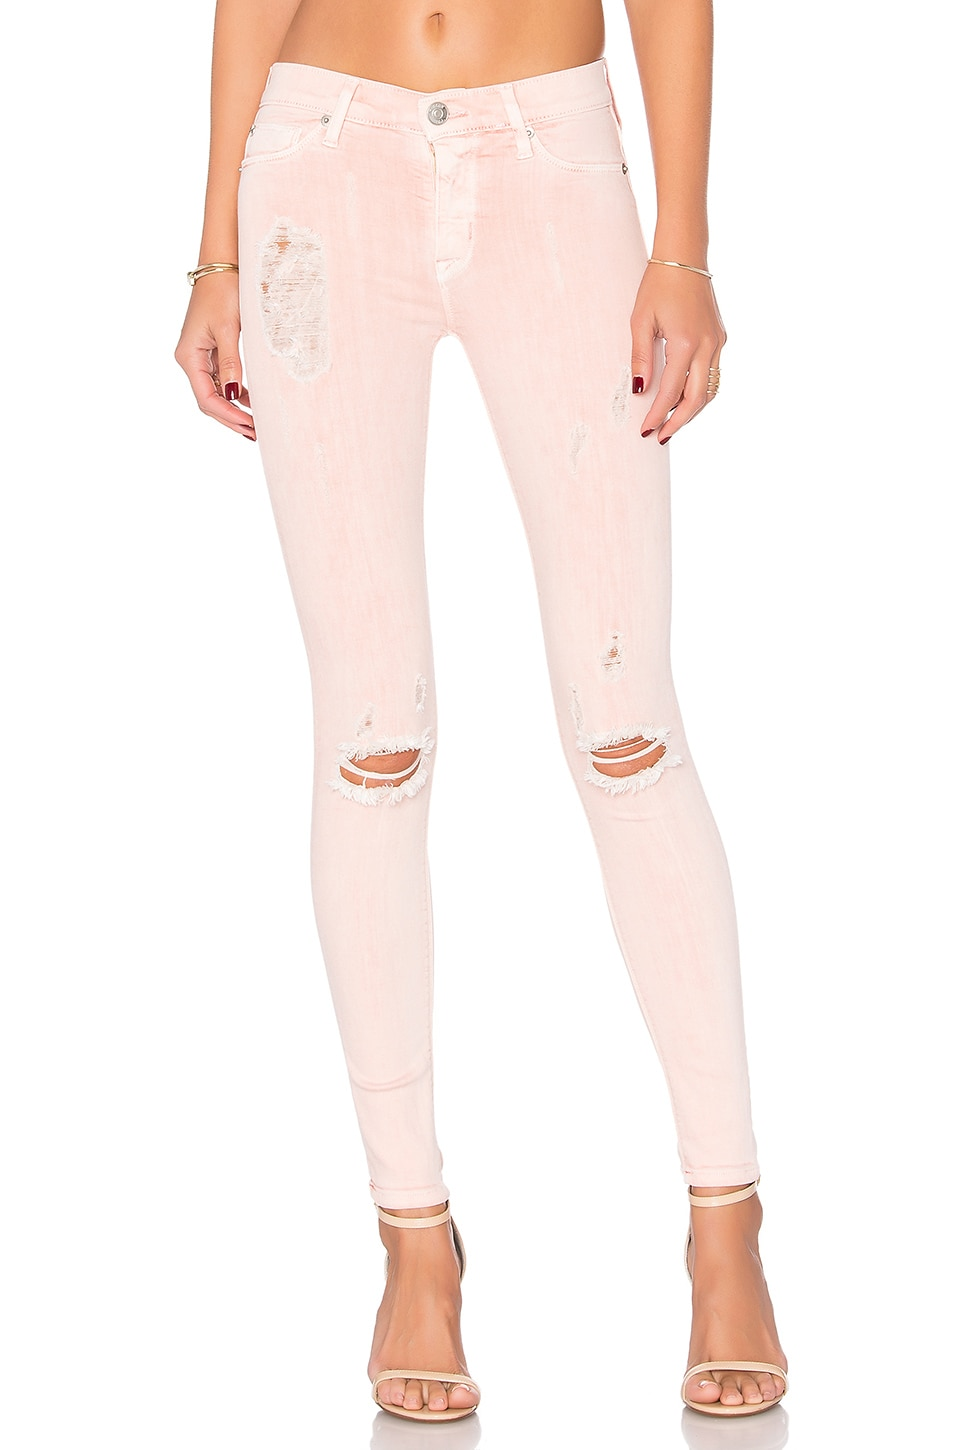 Hudson Jeans Nico Super Skinny in Sunkissed Pink Destructed